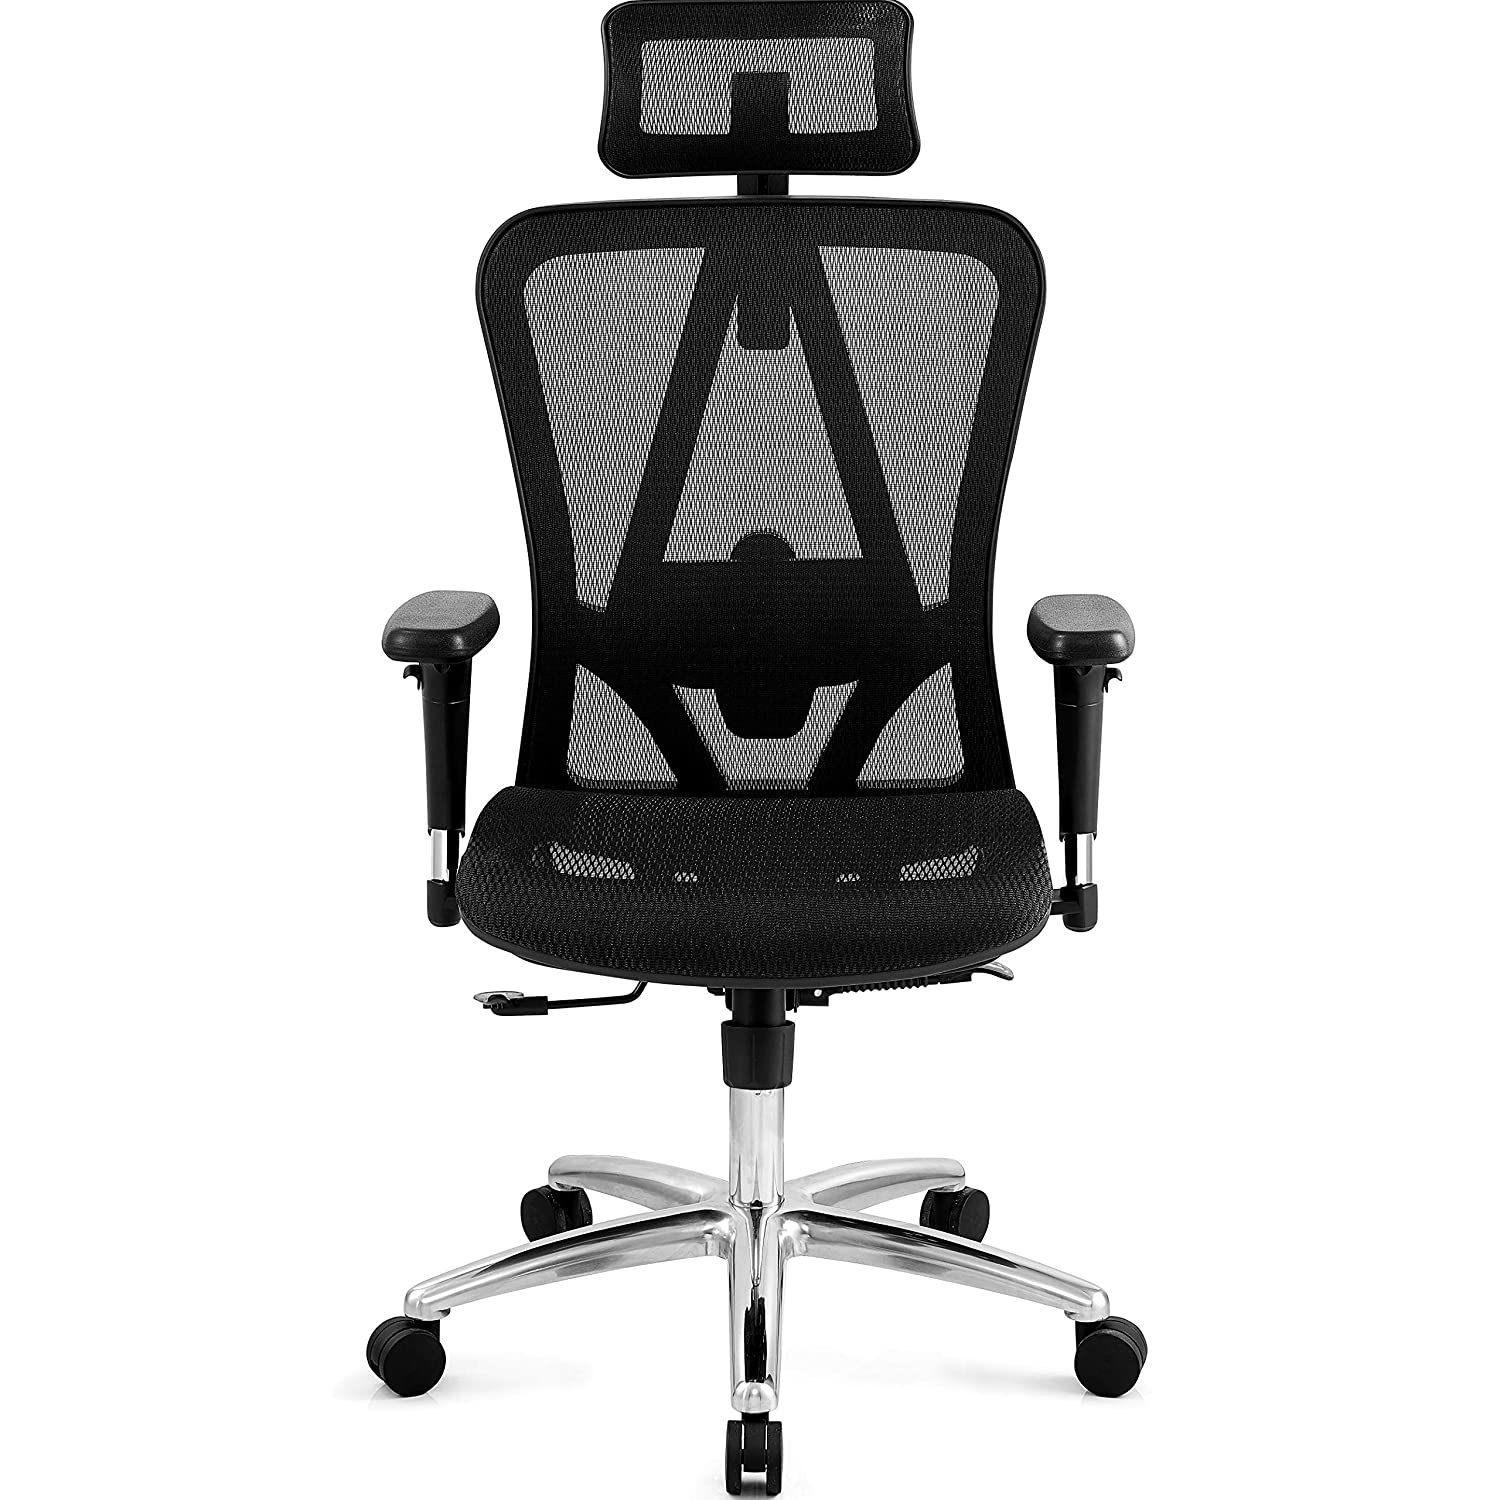 Ticova Ergonomic Office Chair with Adjustable 3D Armrest, Headrest and Lumbar Support – High Back Mesh Chair with Breathable Mesh Seat- Reclinable Computer Desk Chair